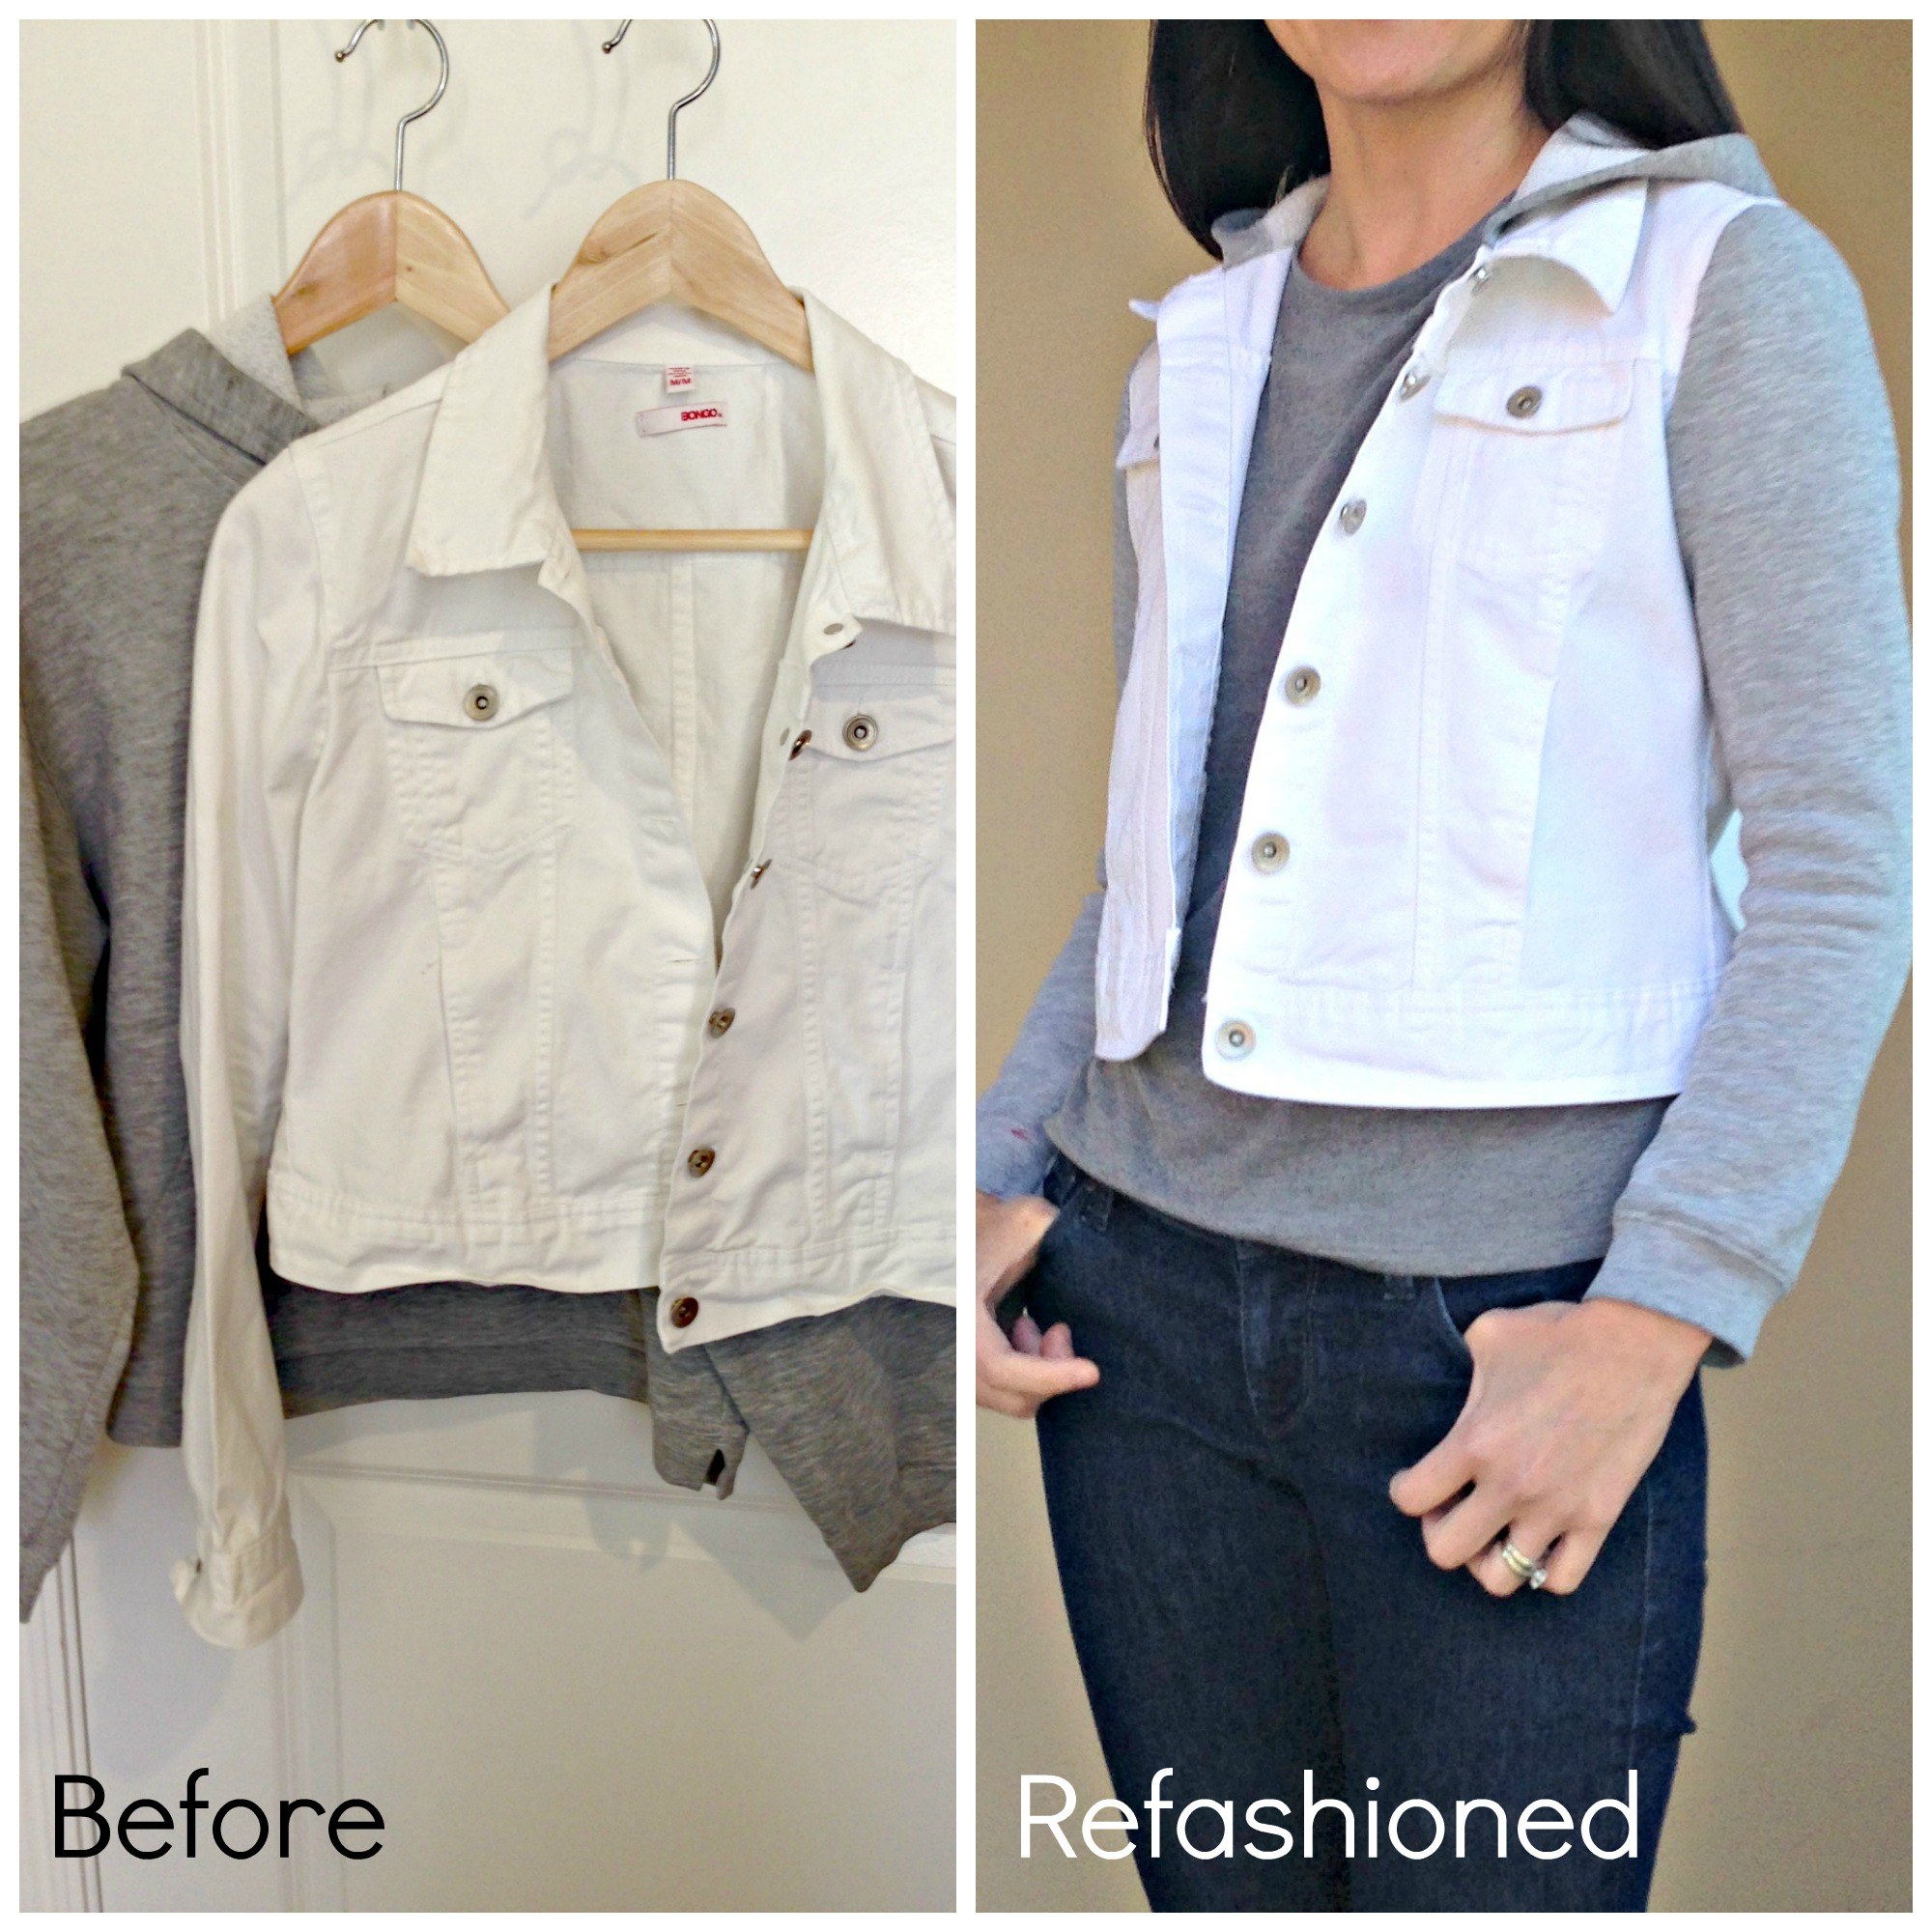 Refashioned Jean Jacket with Sweatshirt Sleeves and Hoodie